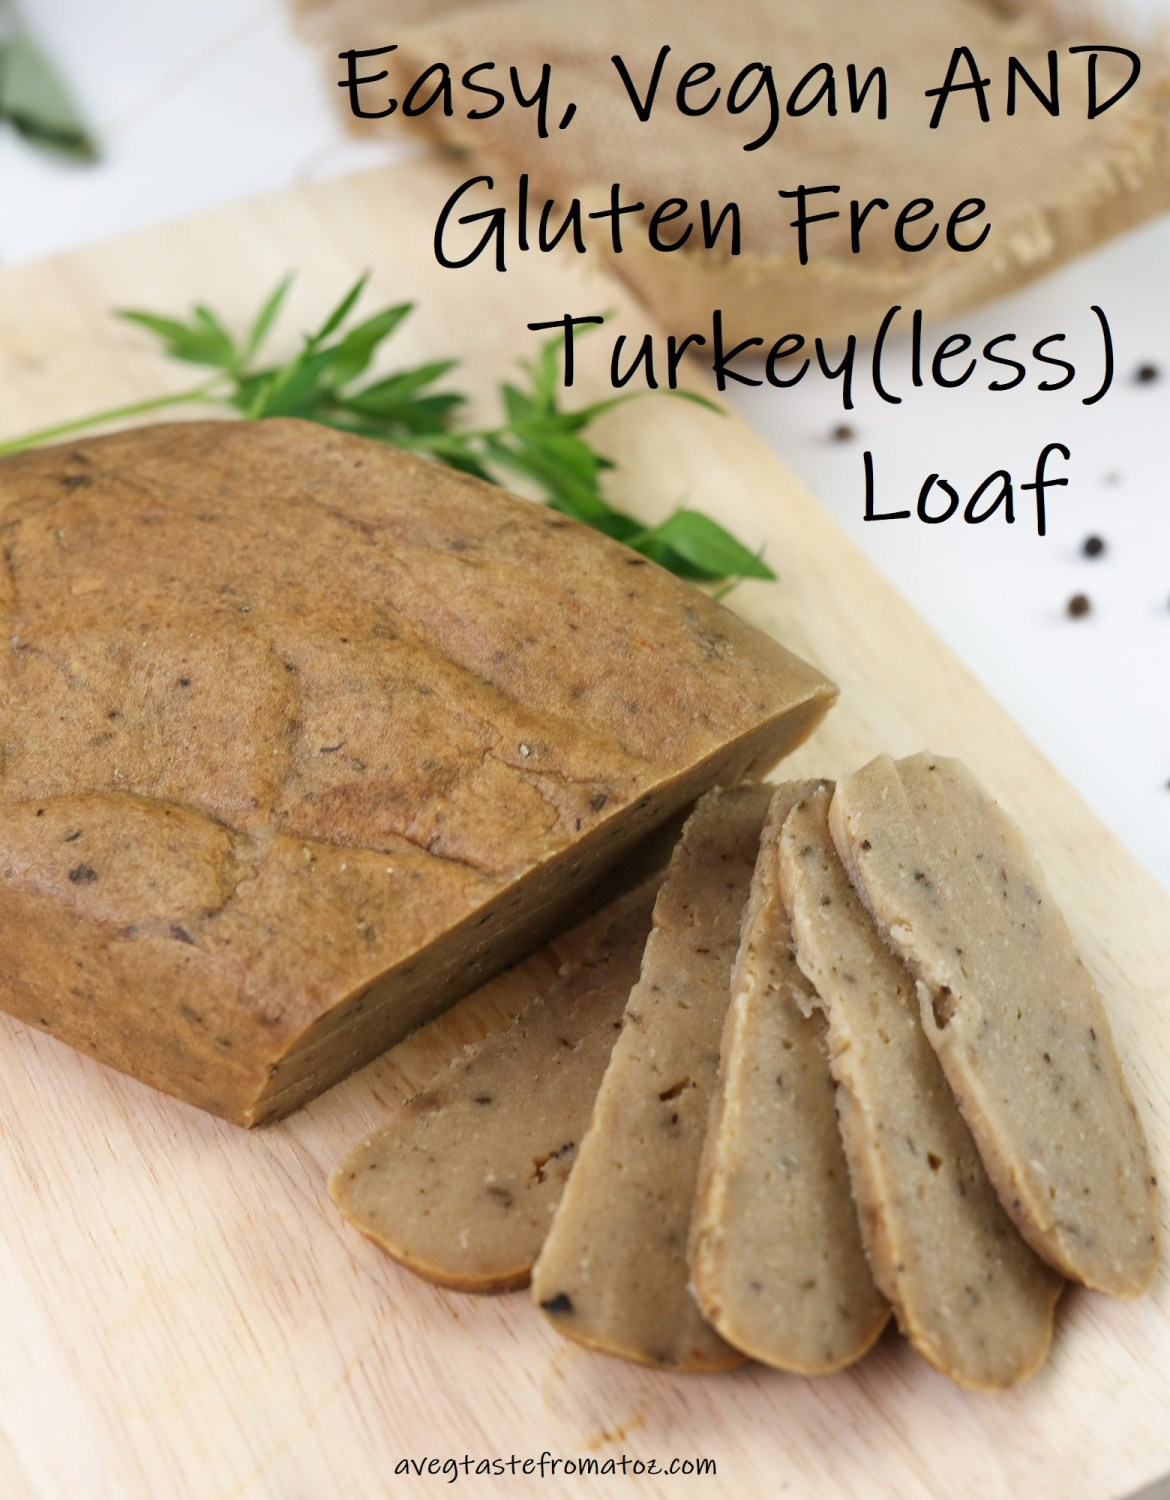 Turkey(less) roast, vegan meat alternative that is also suitable for your gluten and soy free guests sliced on a wooden board